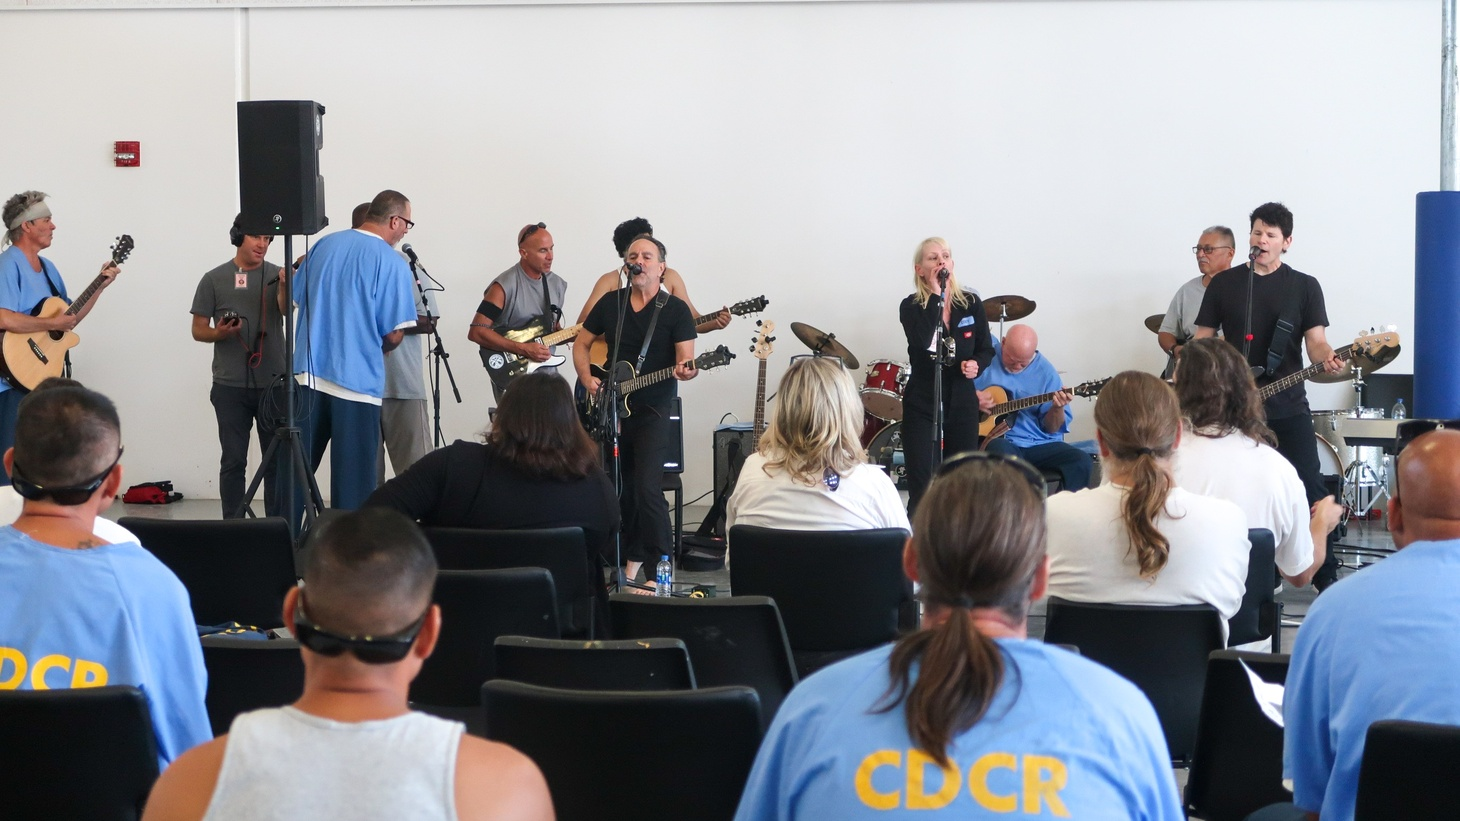 Cody Marks and her band performing at Richard J. Donovan prison.